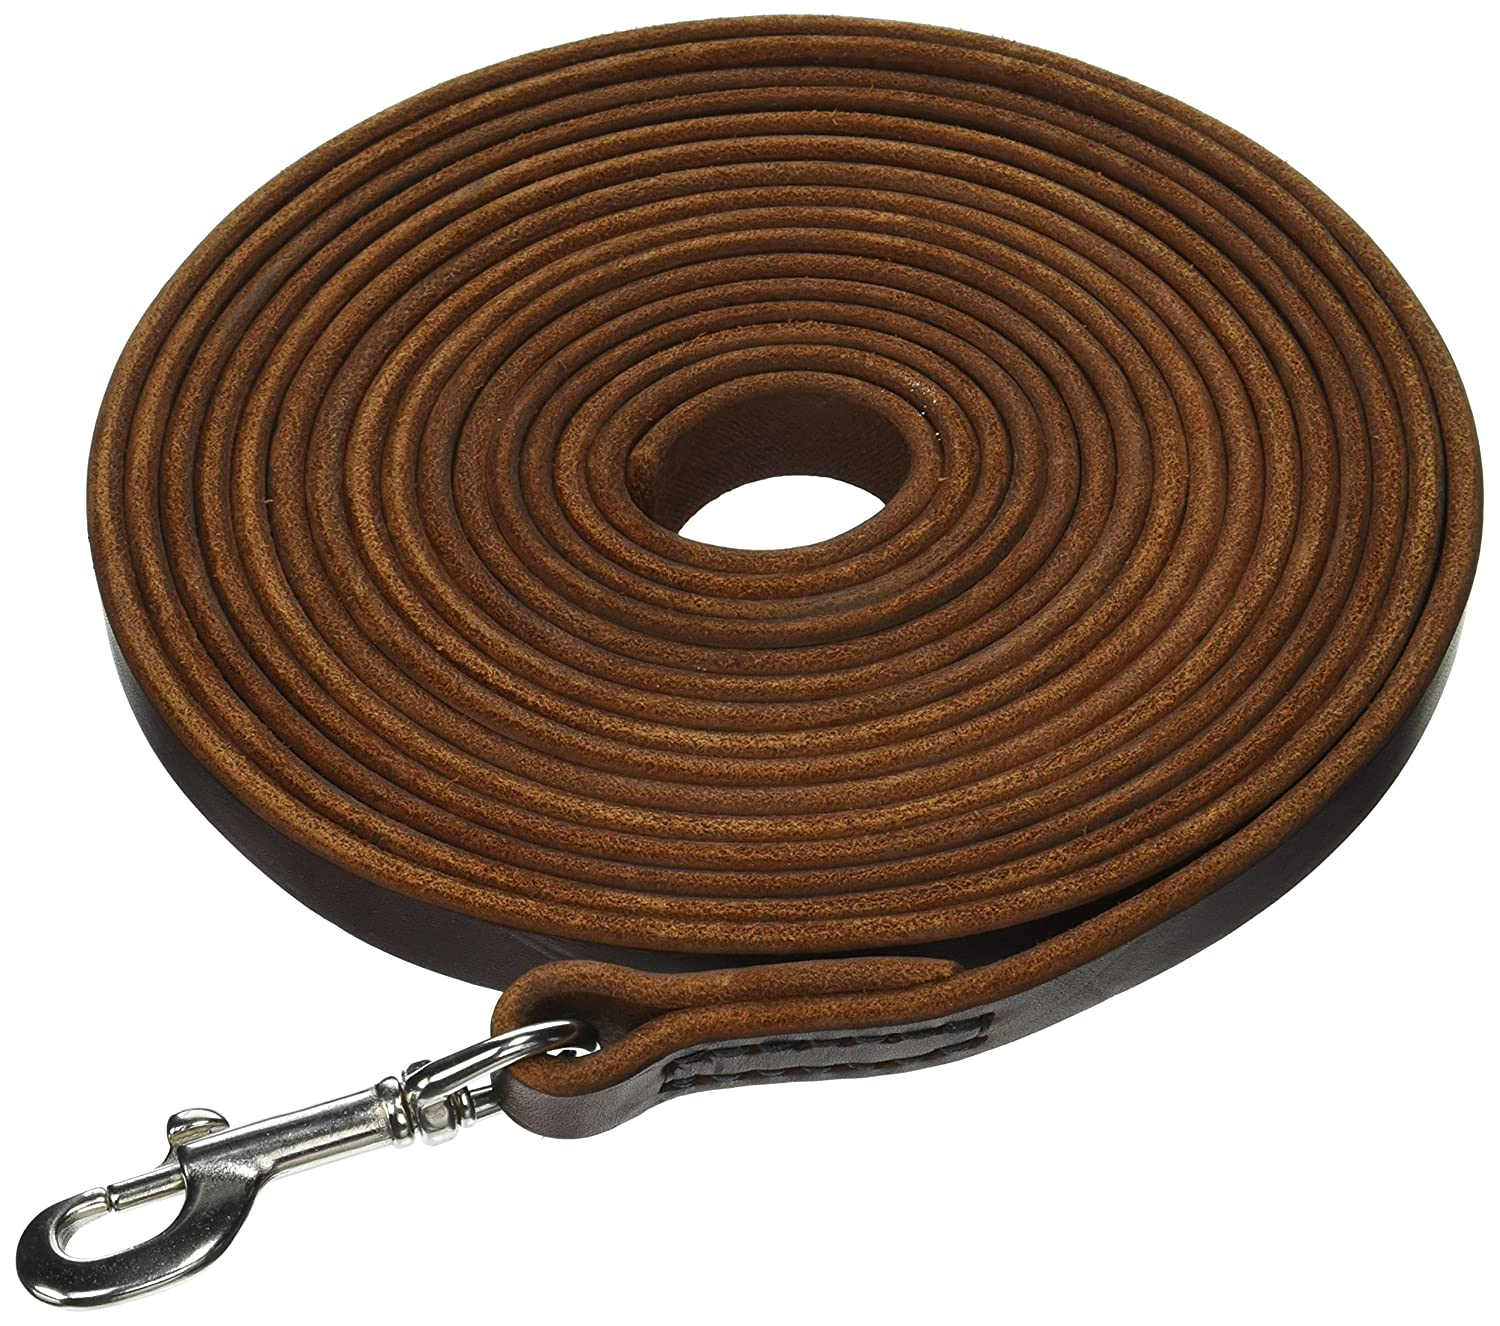 Dean & Tyler Stitched Track Dog Leash with Hardware, 20-Feet by 3 4-Inch Wide, Brown